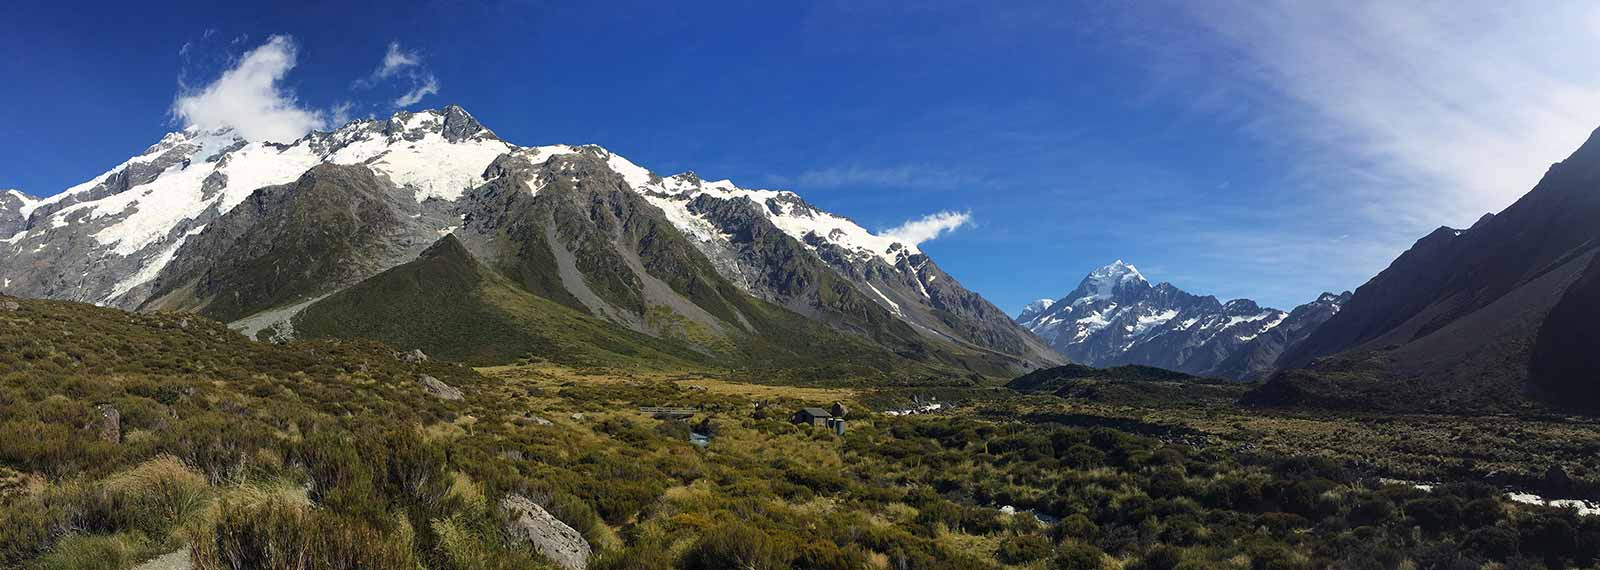 Vacation and road trip on the North and South Island of New Zealand - New Zealand travel guide